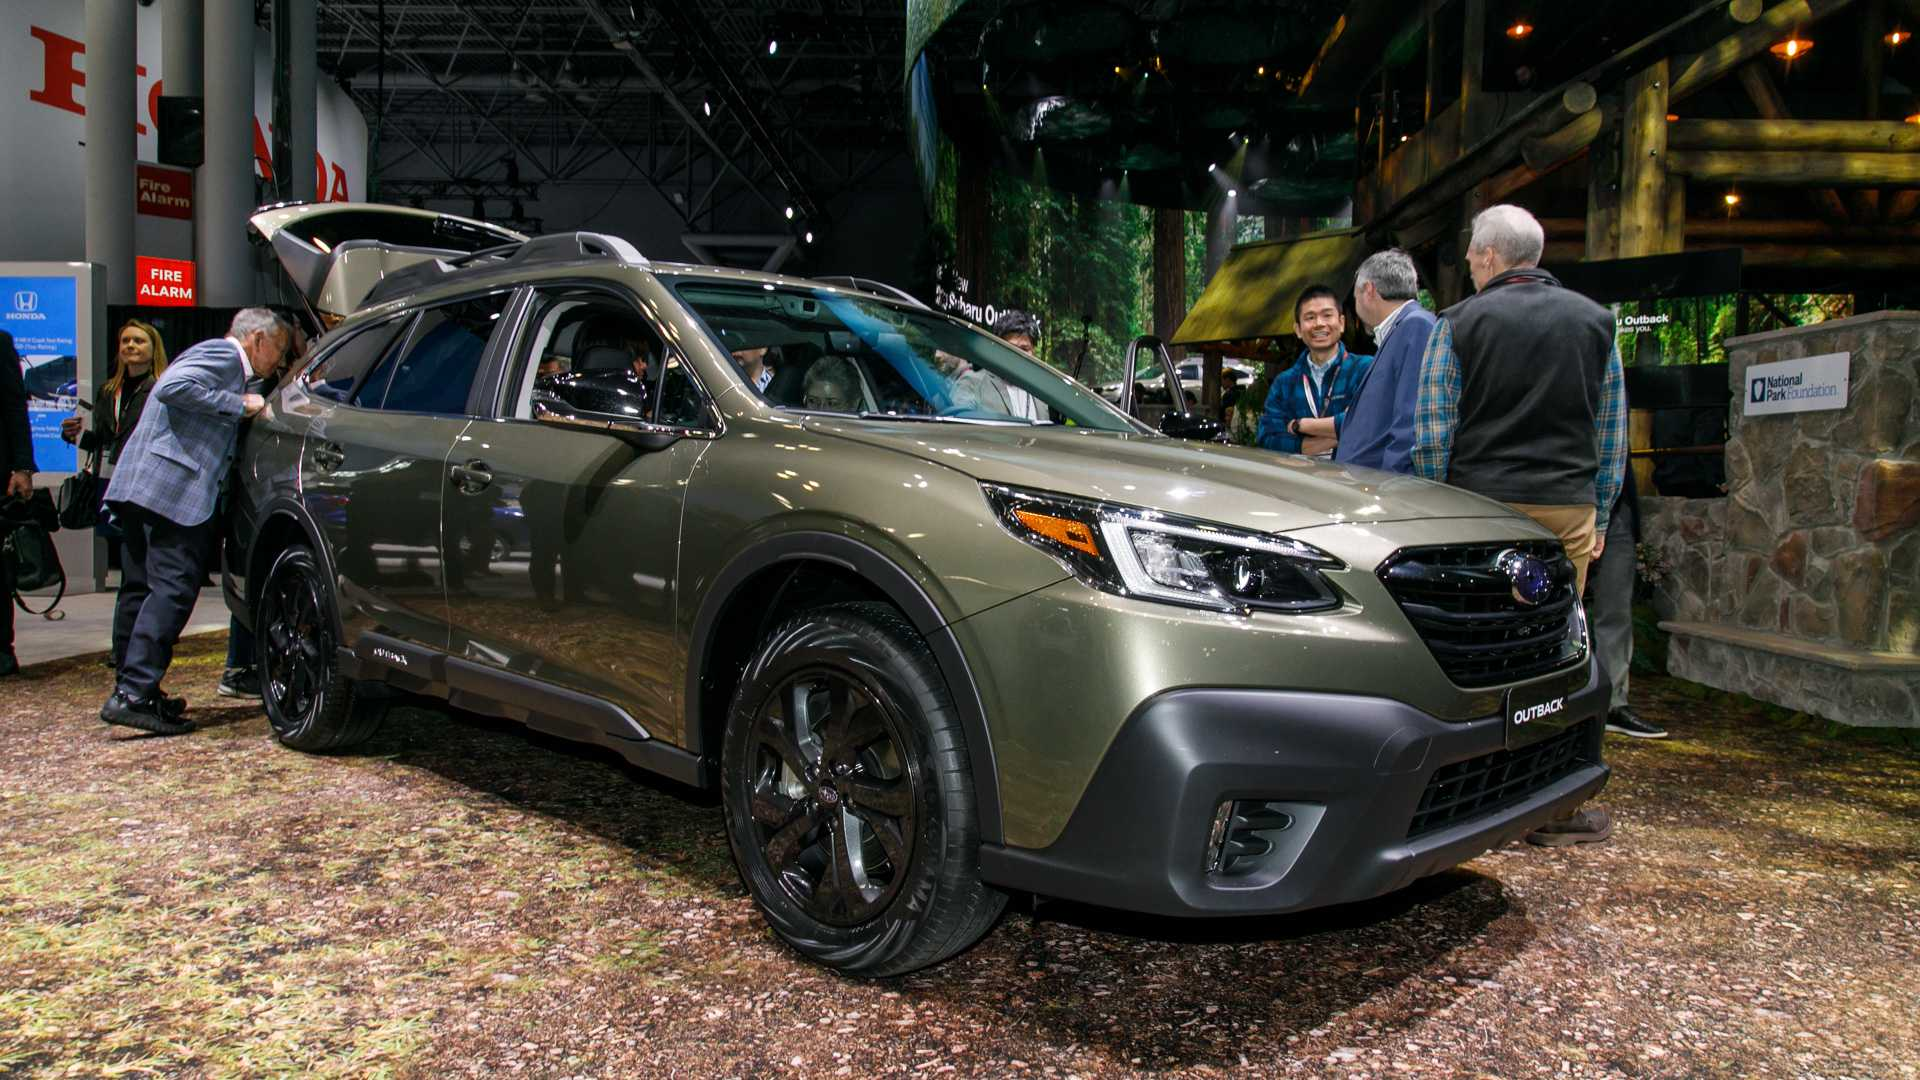 28 Concept of Subaru Outback 2020 New York Reviews for Subaru Outback 2020 New York